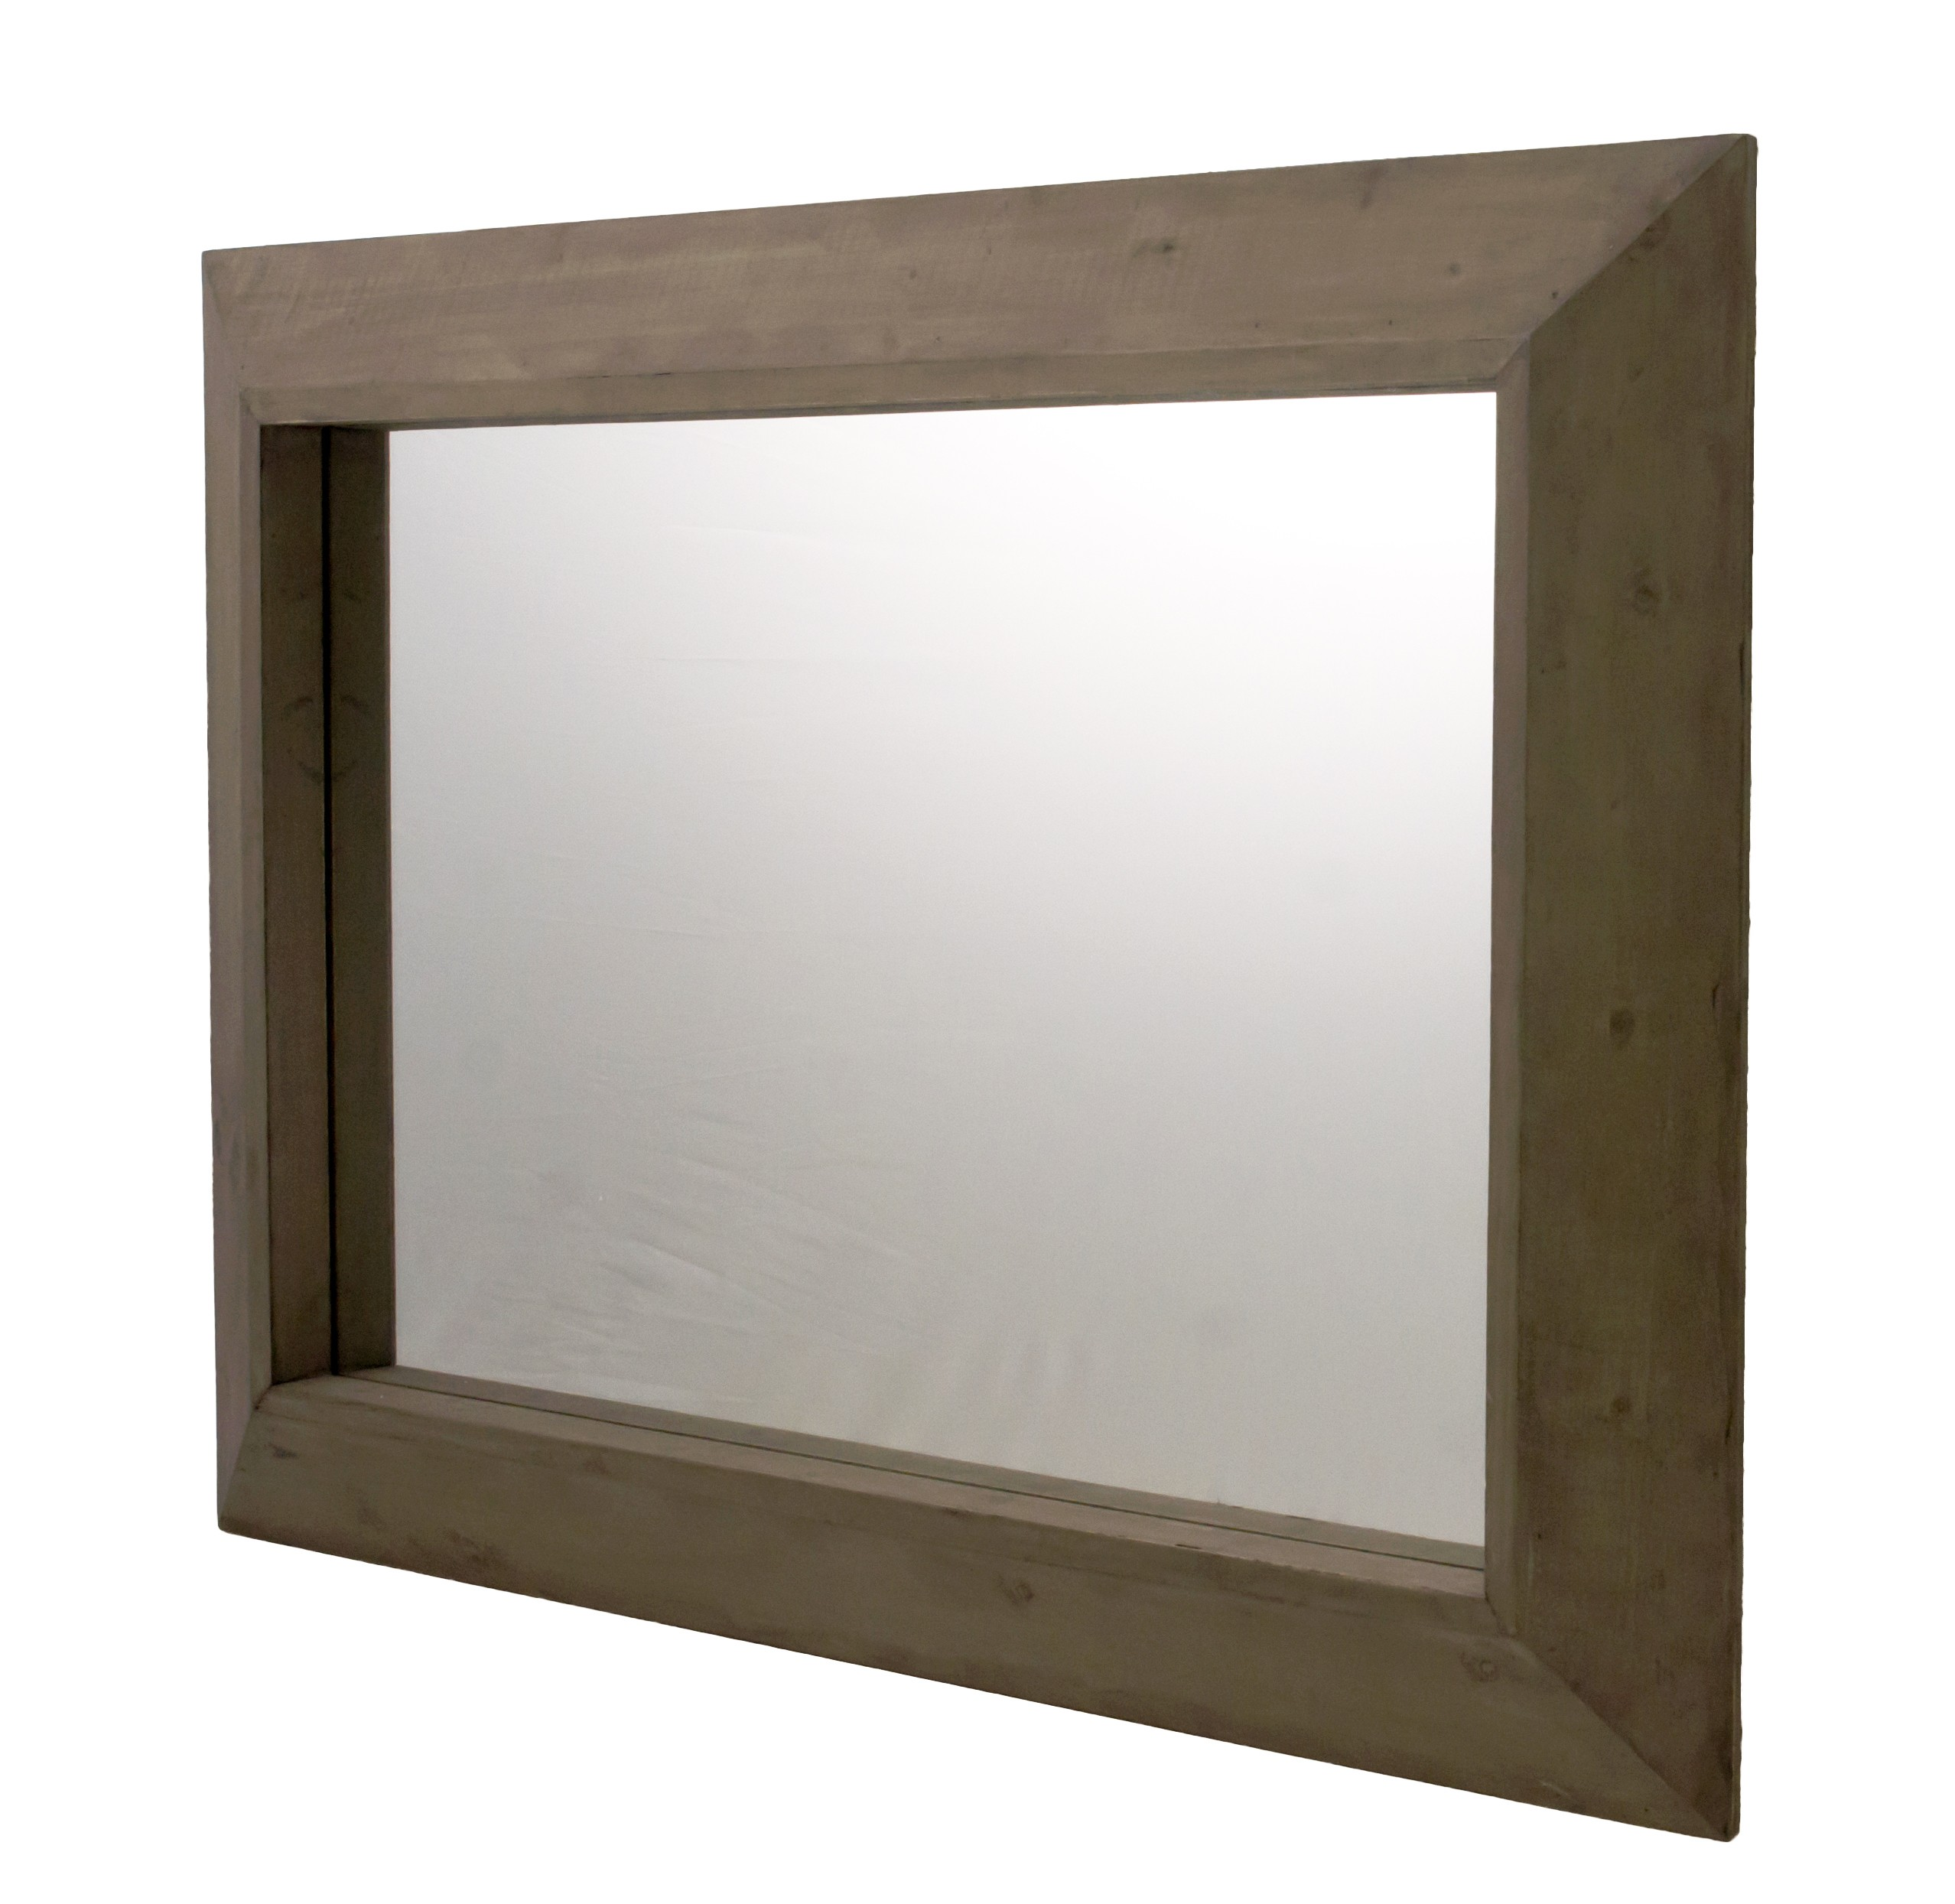 Simple grand miroir glace murale trumeau de chemine en bois xxcm with glace murale pour salon for Glace miroir moderne